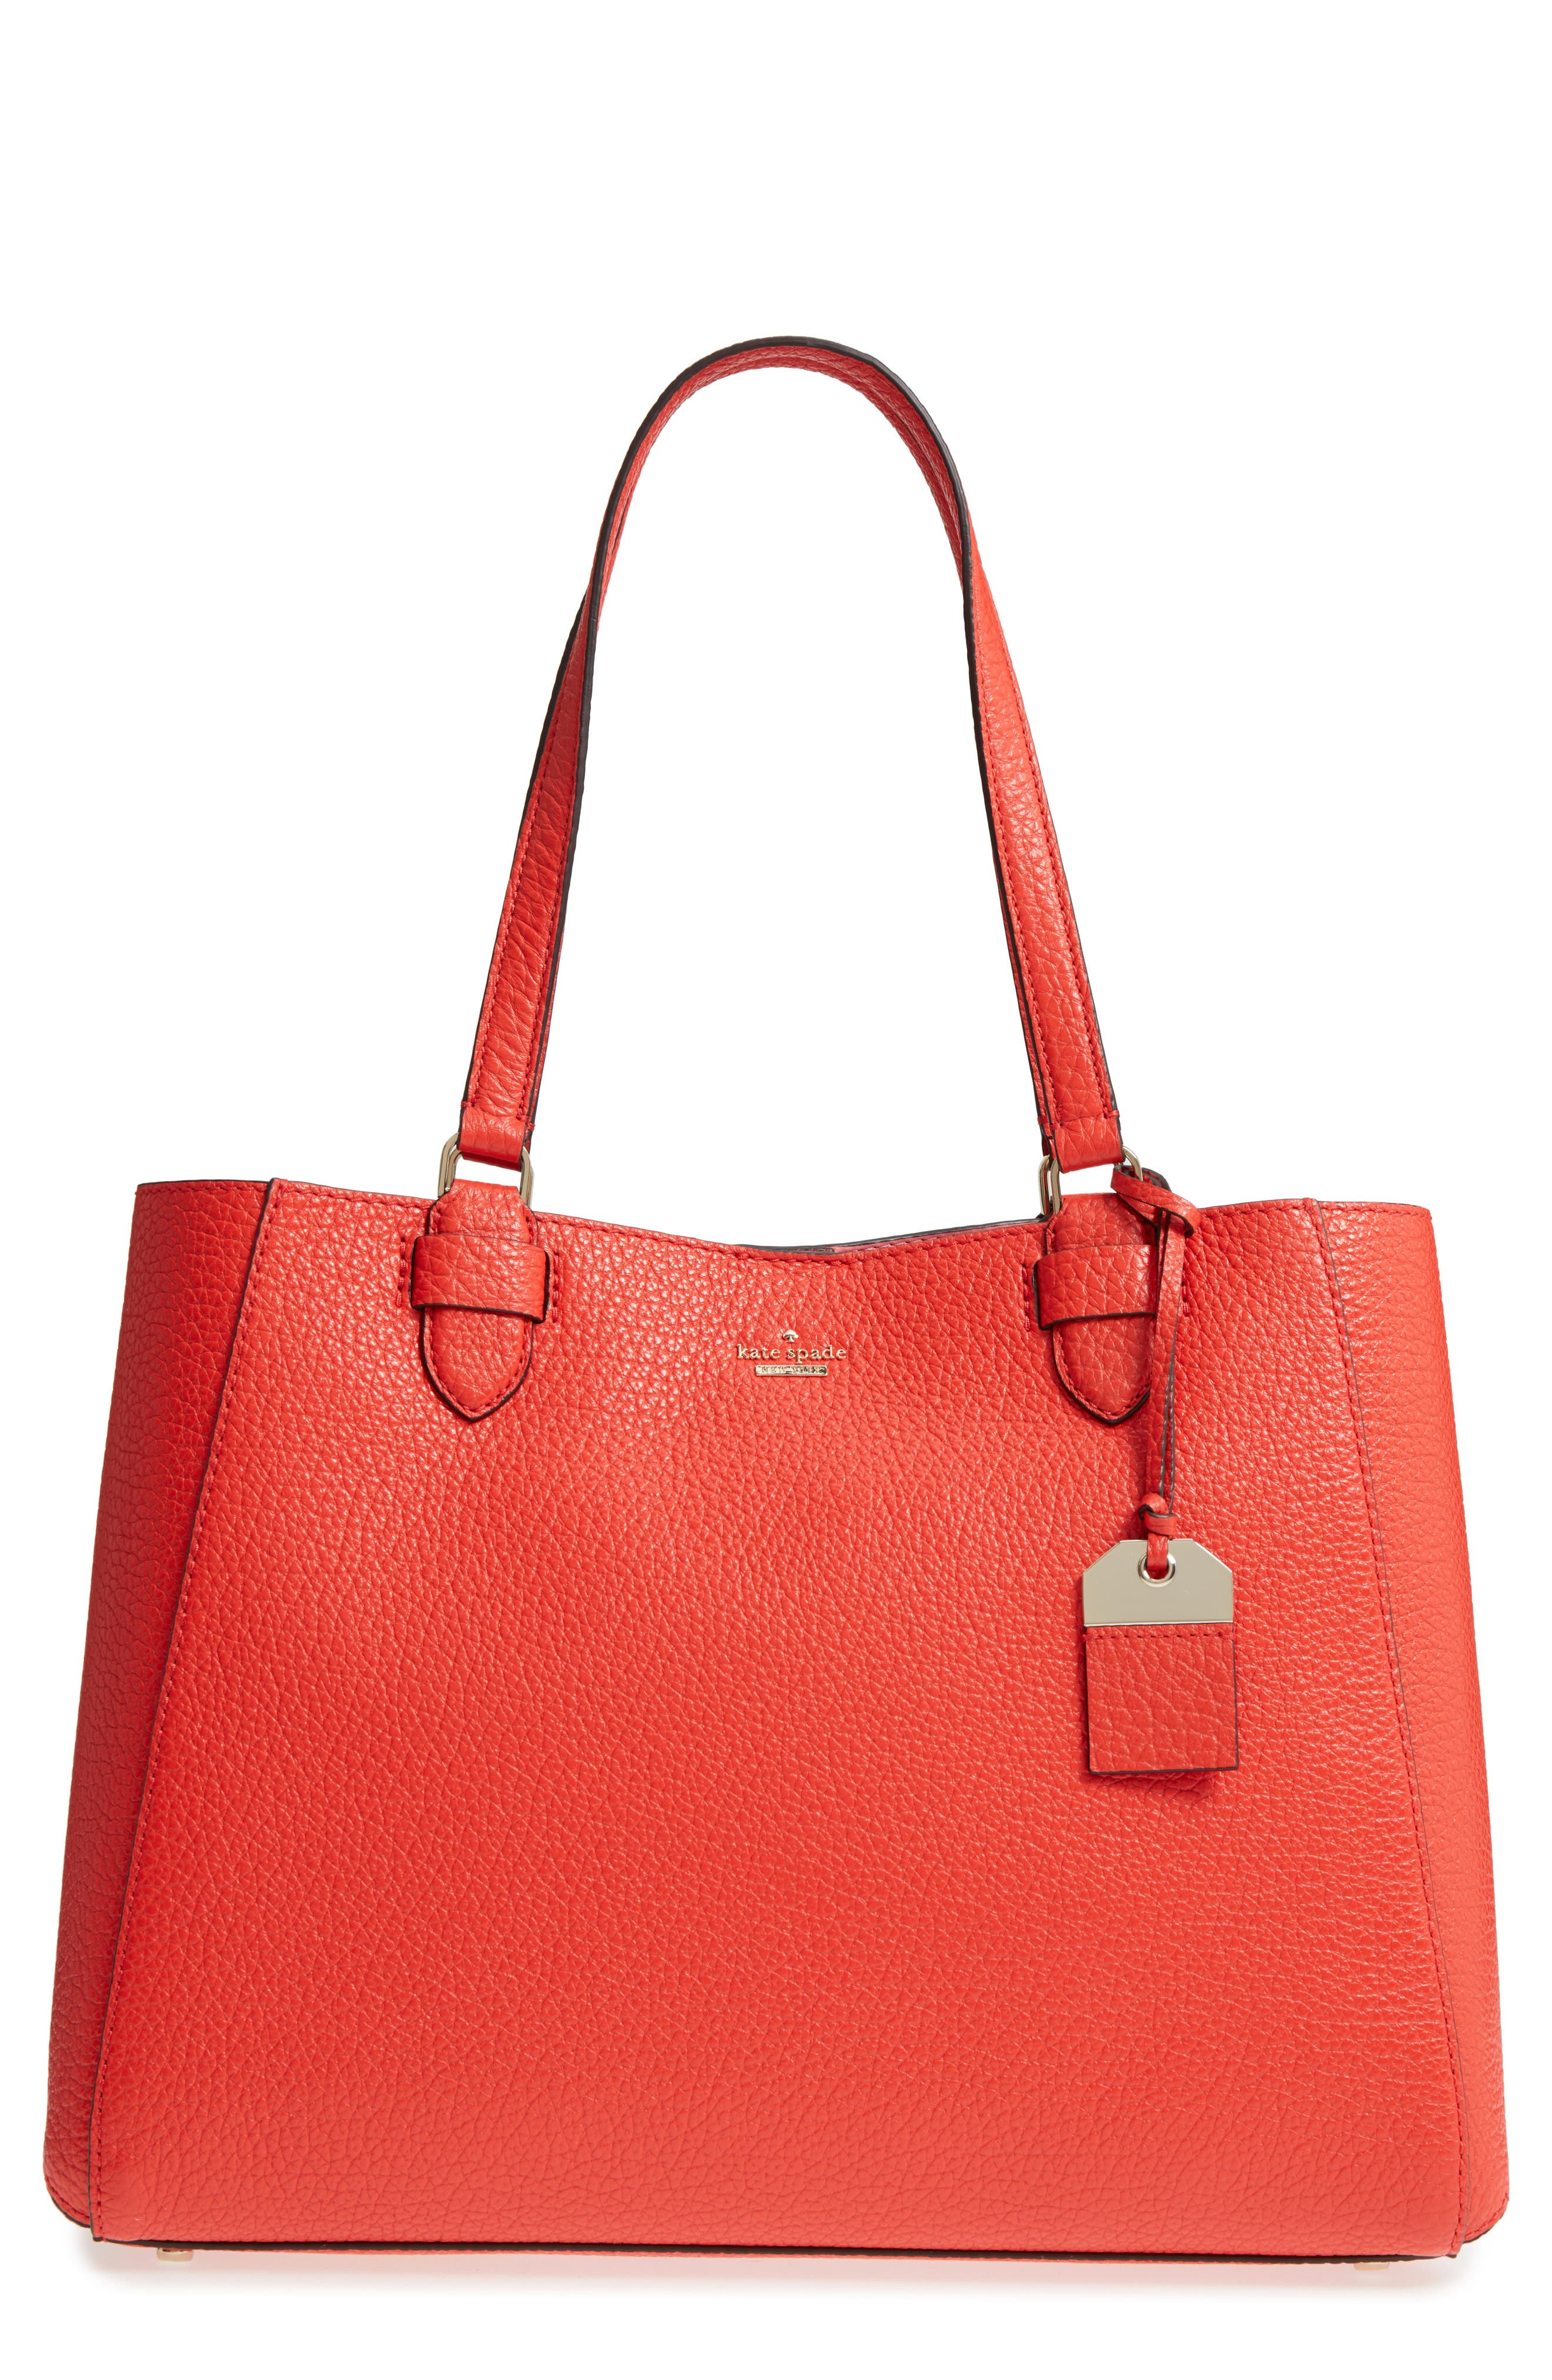 carter street - tyler leather tote,                             Main thumbnail 4, color,